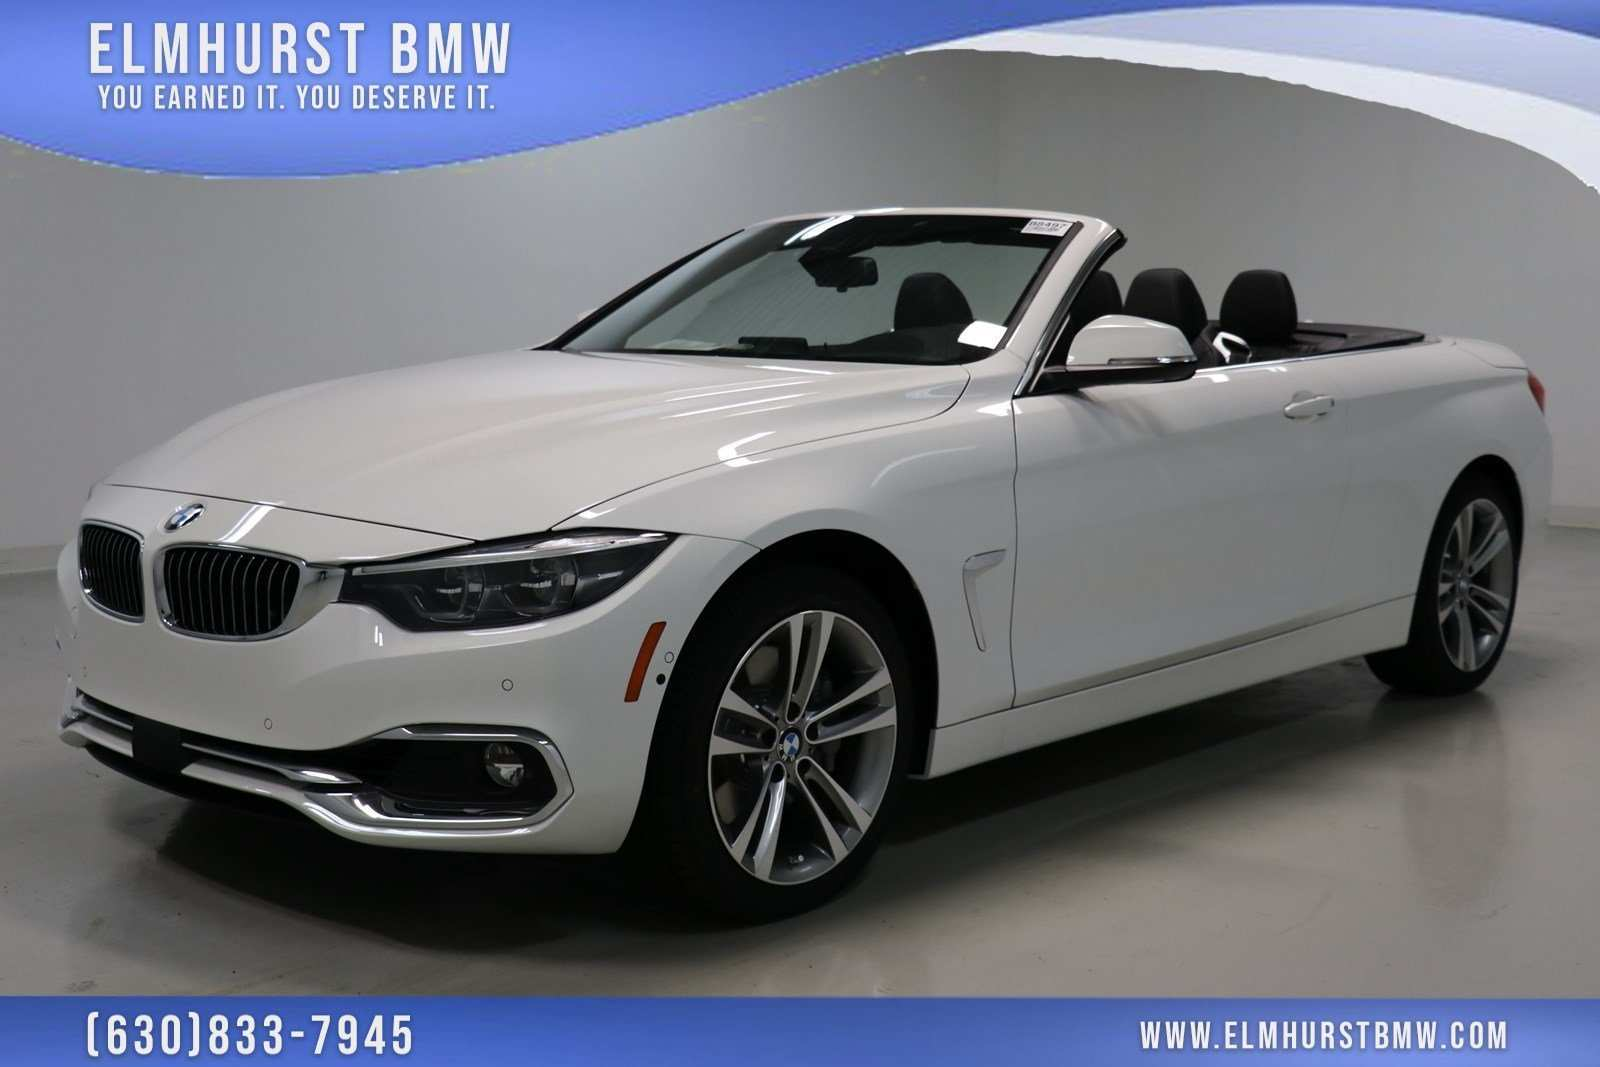 53 All New 2019 Bmw 4 Series Engine with 2019 Bmw 4 Series